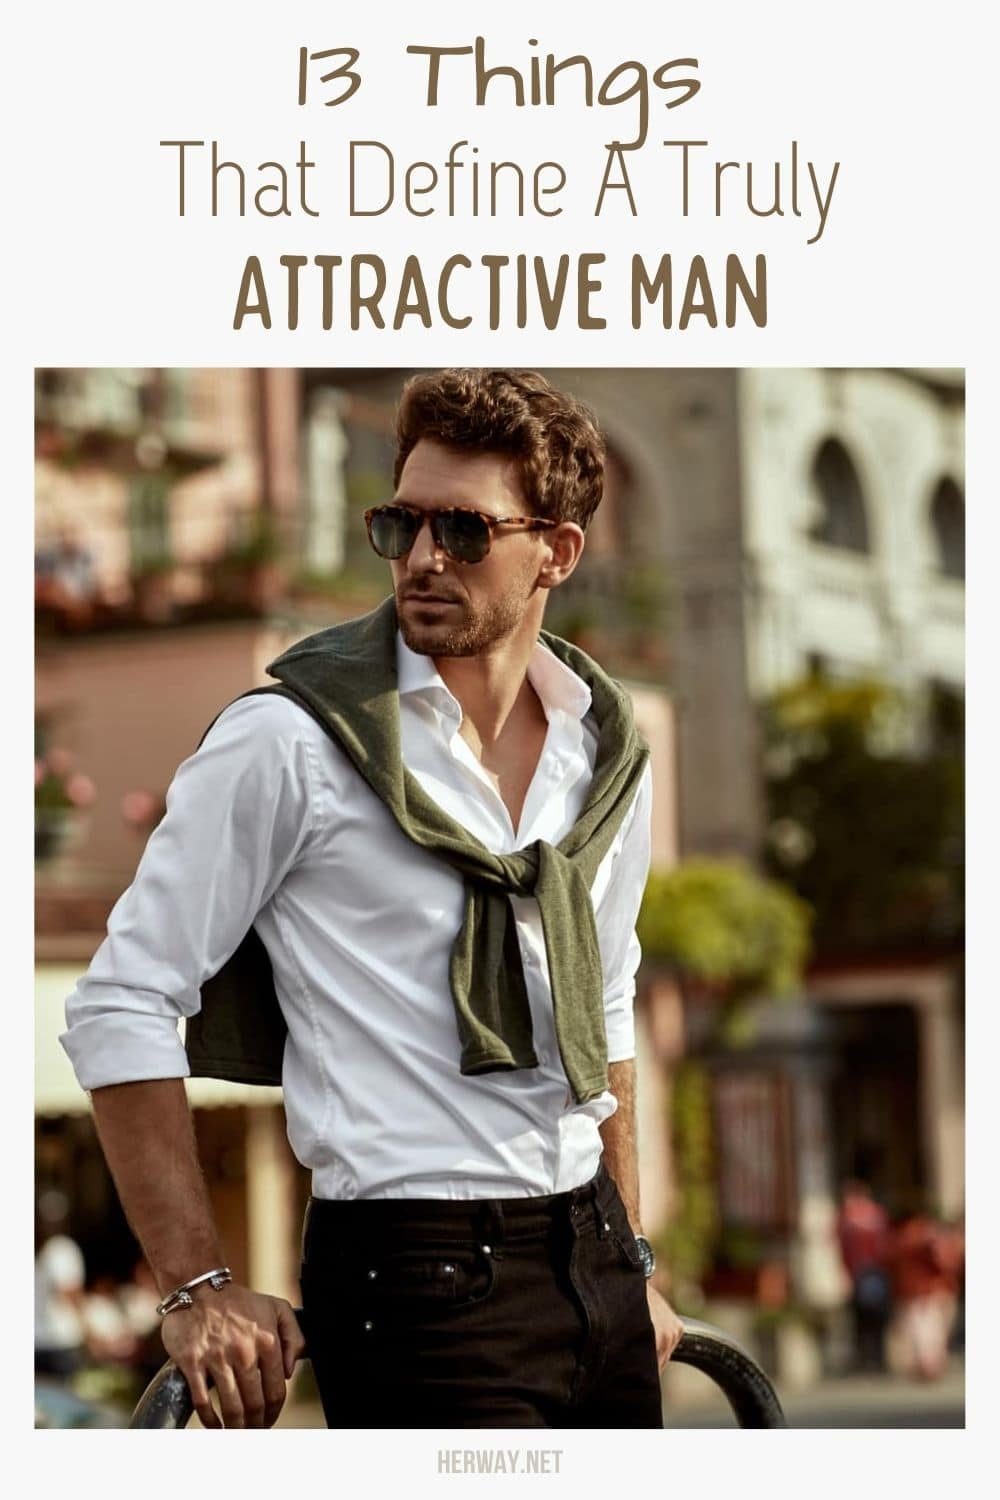 13 Things That Define A Truly Attractive Man